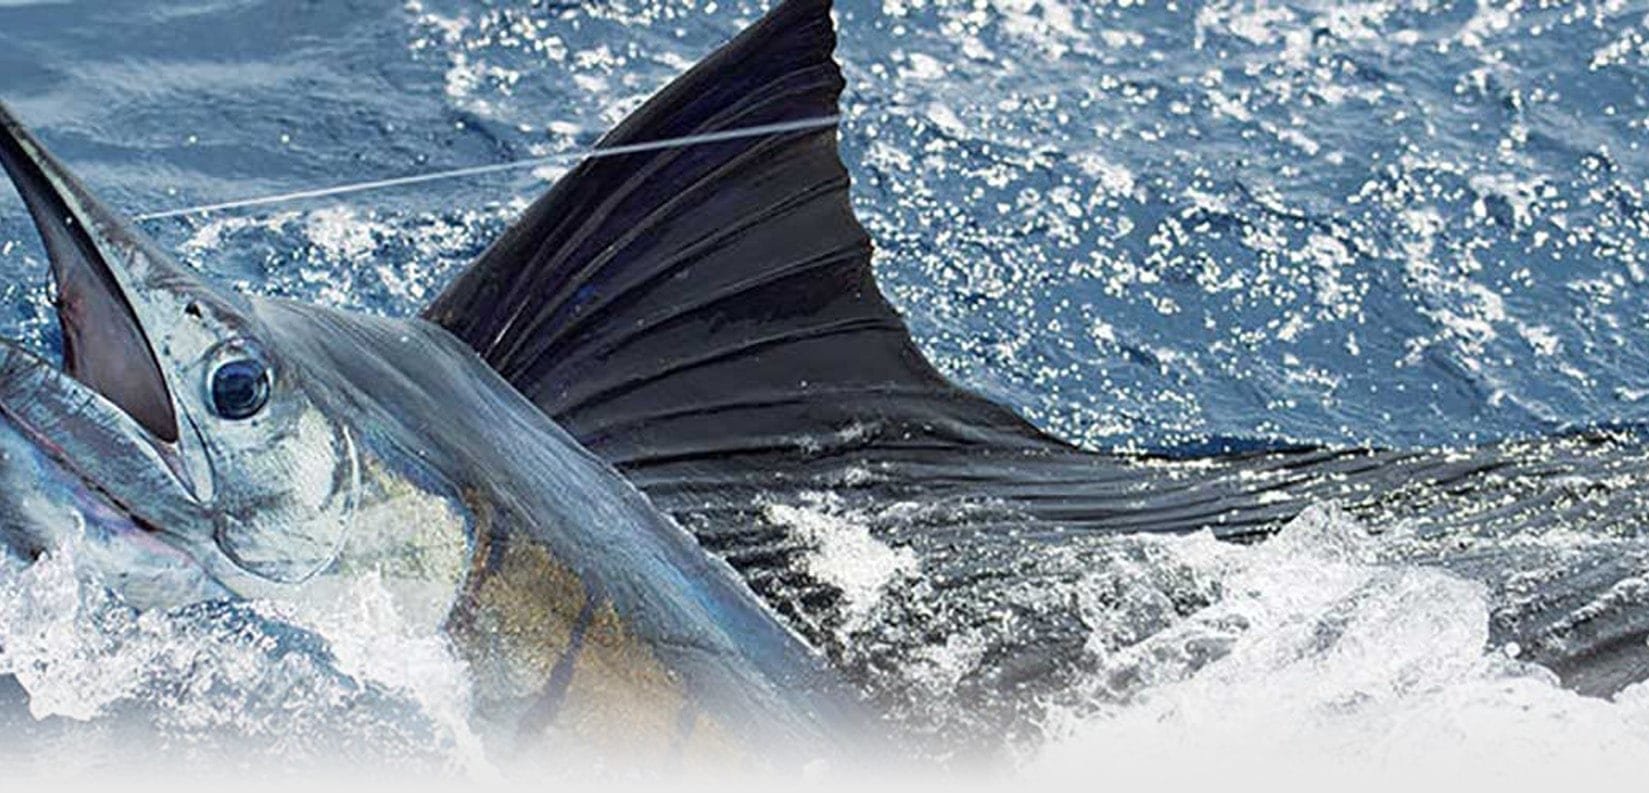 We have the best Sailfishing destinations!